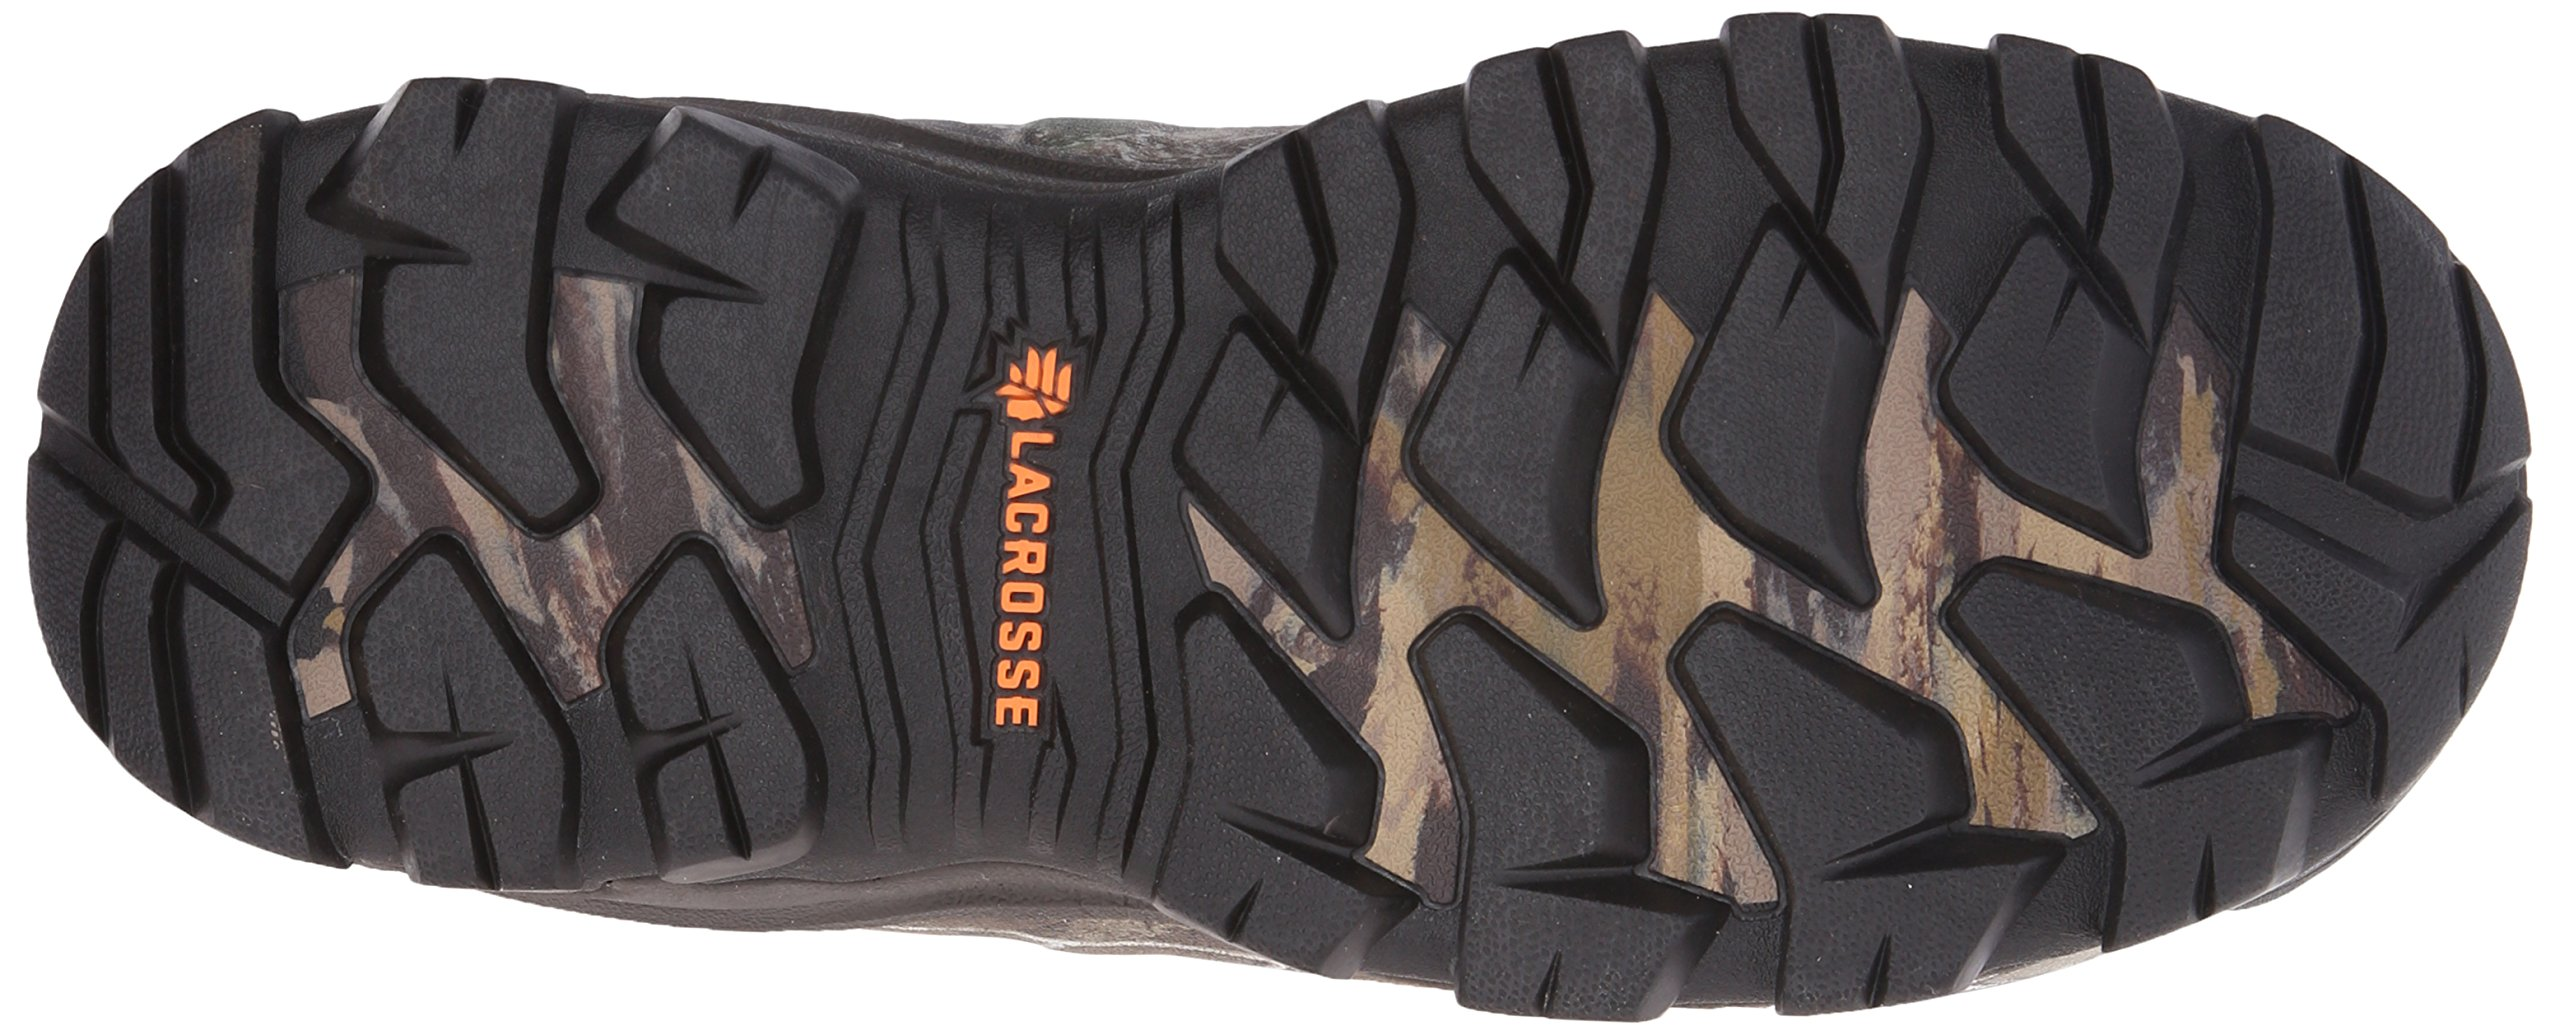 "LaCrosse Men's Alphaburly Pro 18"" 1600G Hunting Boot,Realtree Xtra,11 M US by Lacrosse (Image #3)"